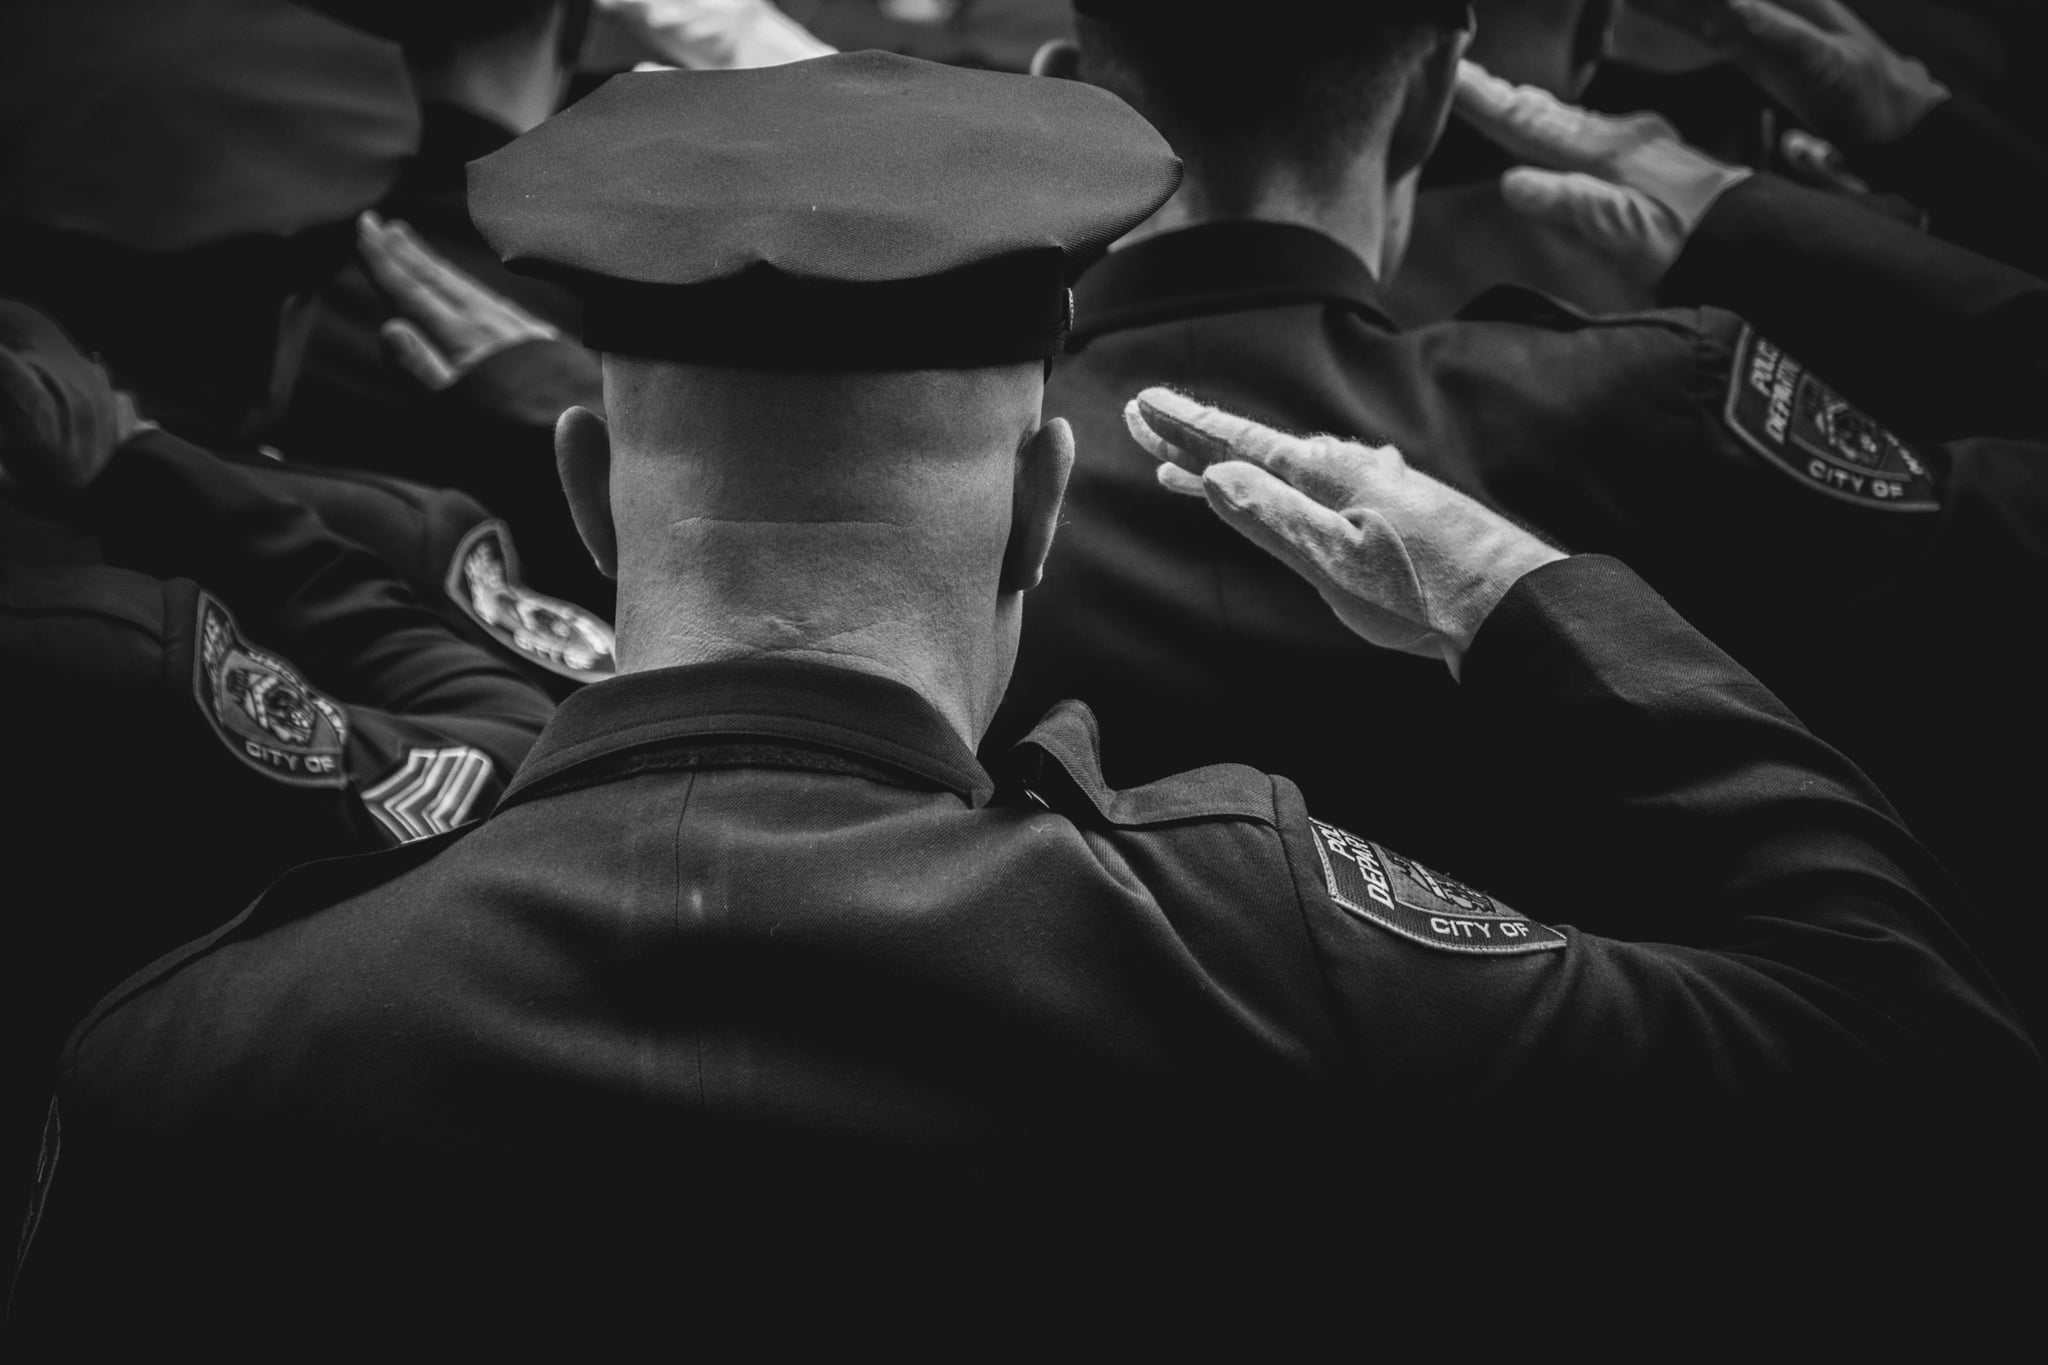 I'm Married to a Police Officer, and This Is What I Want You to Know